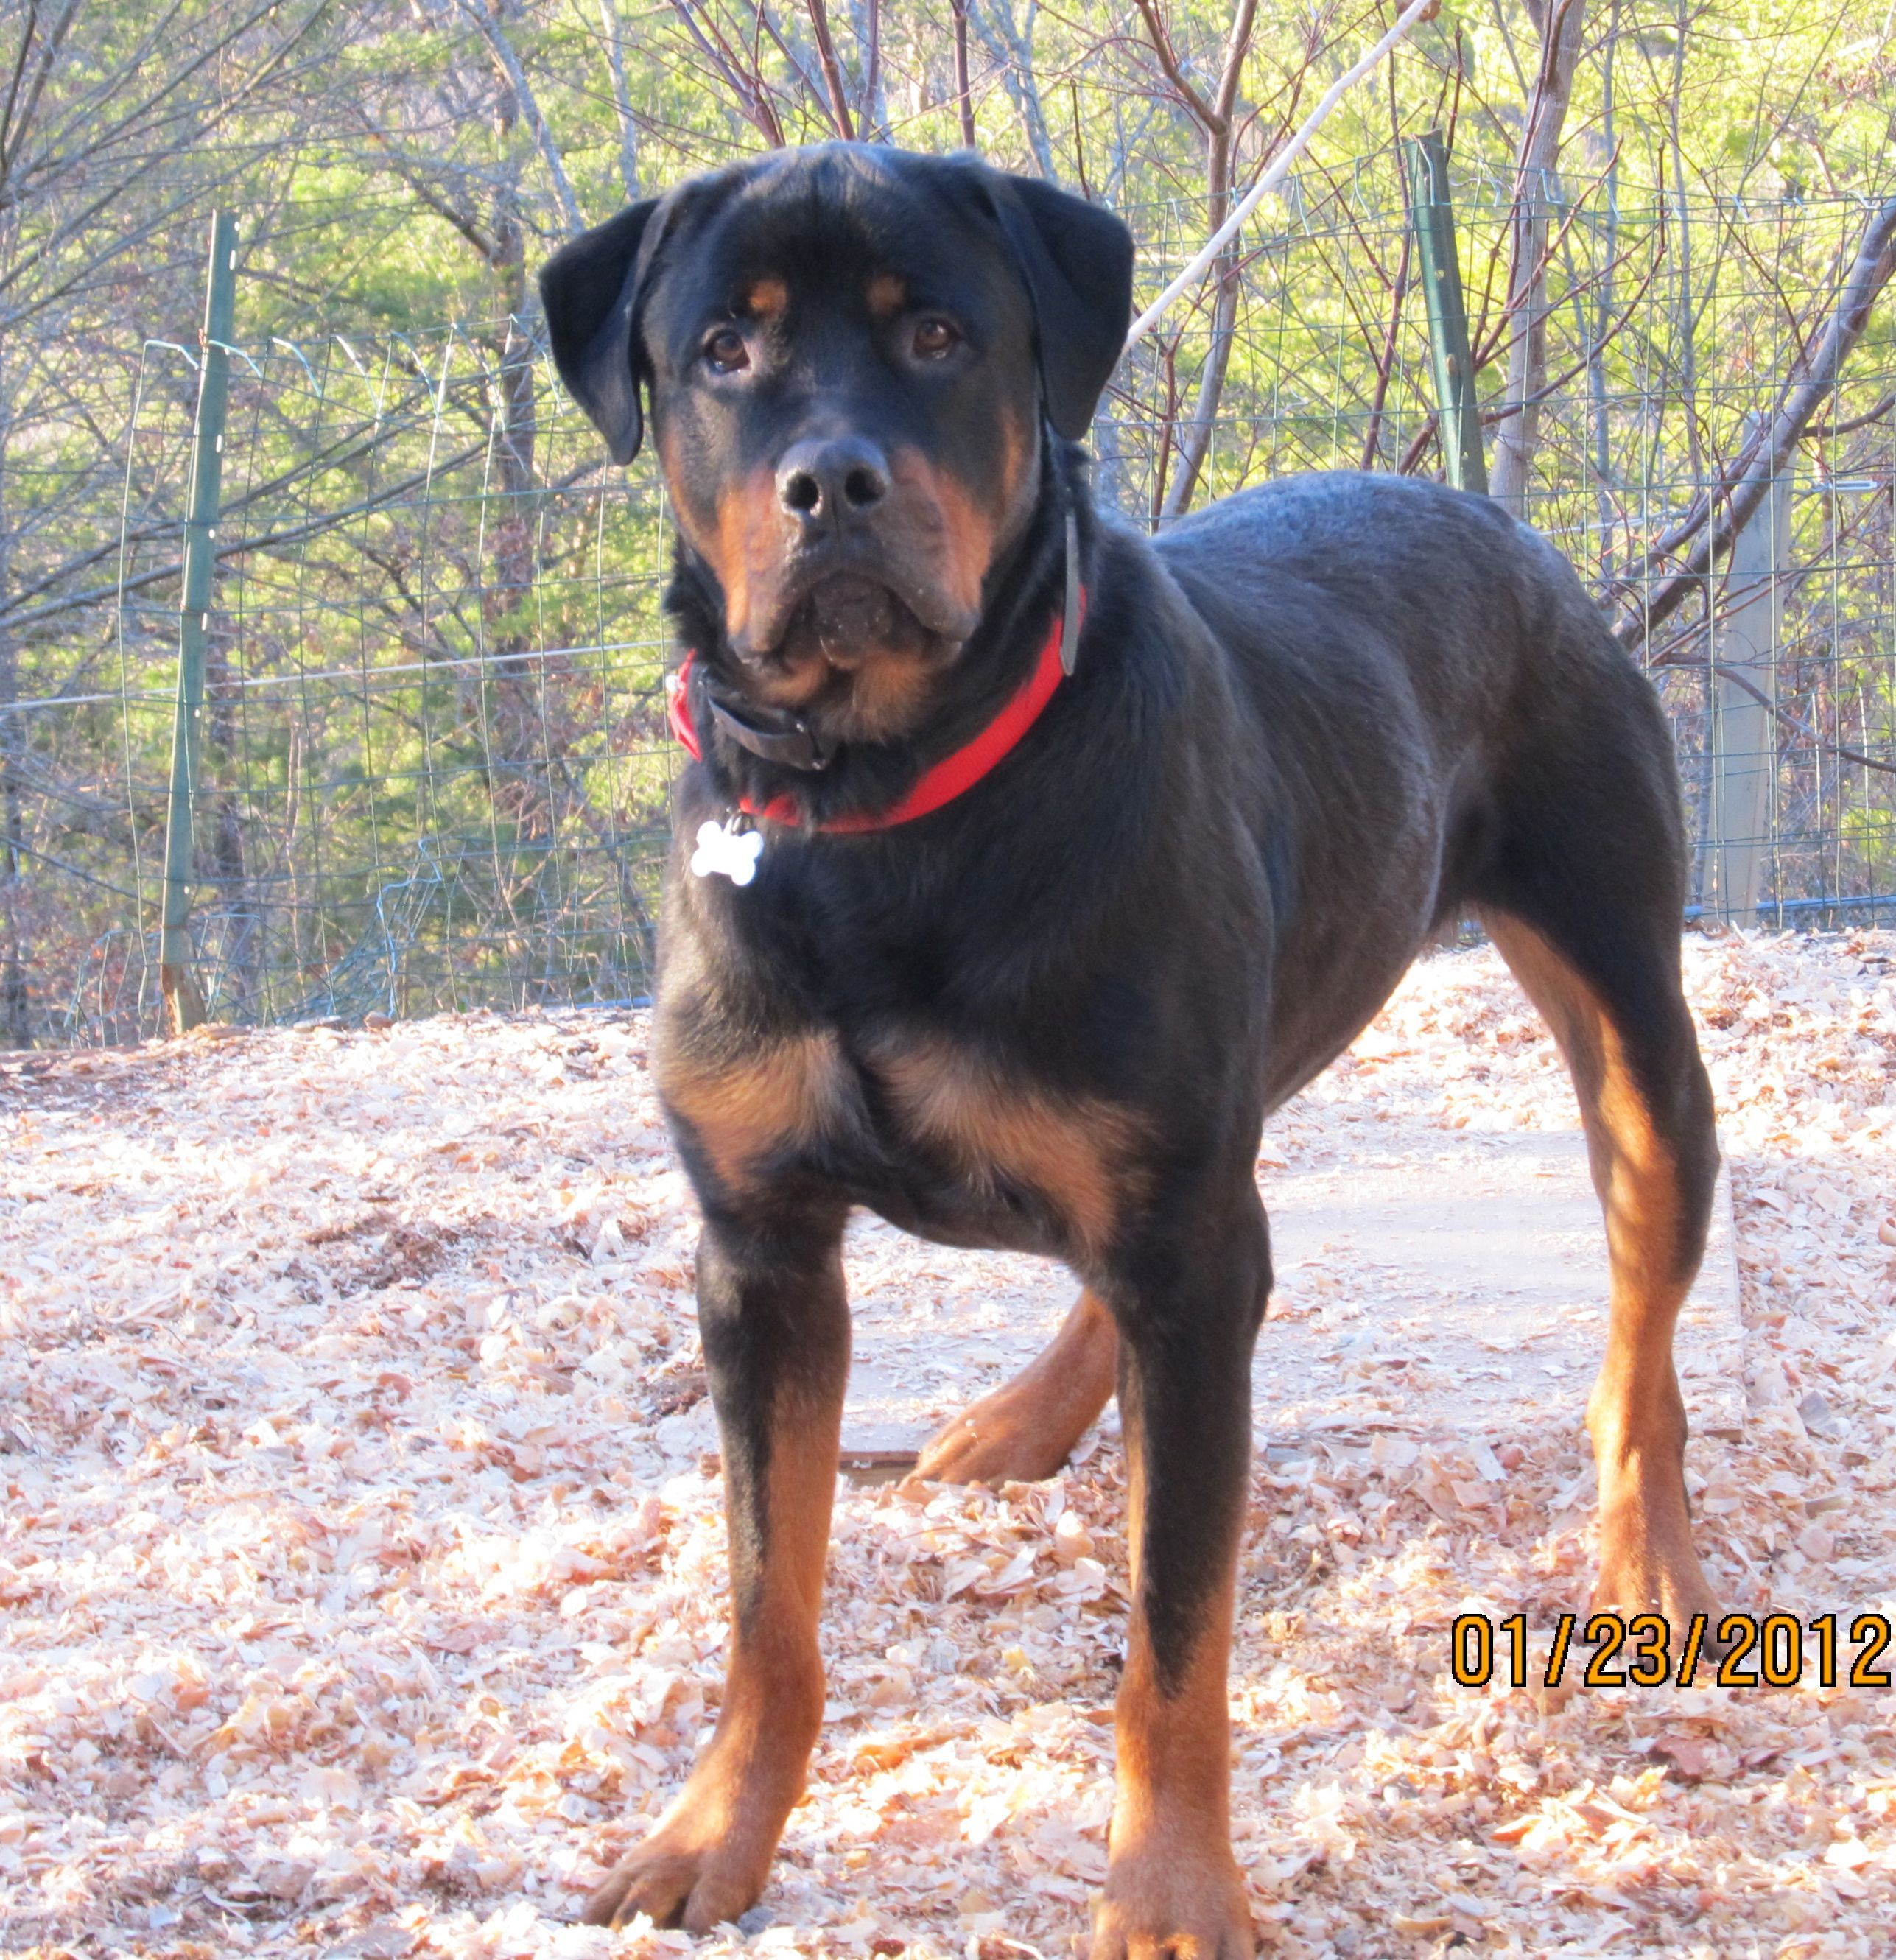 Bullmastiff Rottweiler Mix Stevieposed Jpg Rottweiler Mix Bull